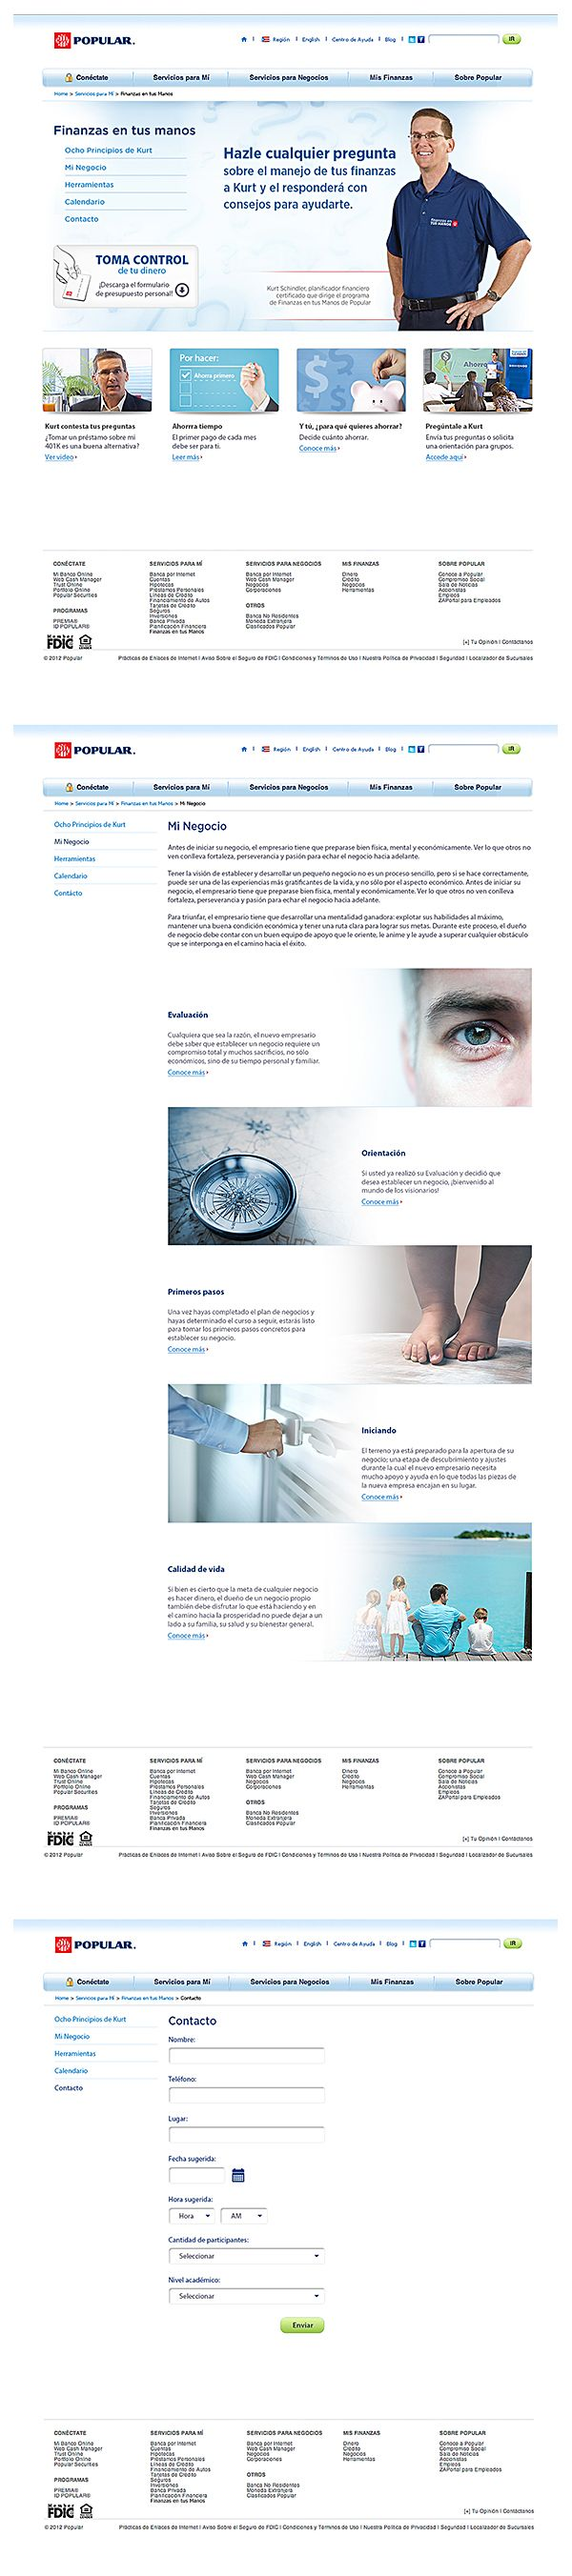 Project: Website - Client: Banco Popular de Puerto Rico - Country: Puerto Rico / Works by KDS, Buenos Aires, Argentina / Find us in www.kds.com.ar or Facebook/KDSARG and Twitter/KDSARG / Tags: #finanzas #finance #popular #bppr #créditos #credits #banco #bank #dinero #money #prestamos #loan